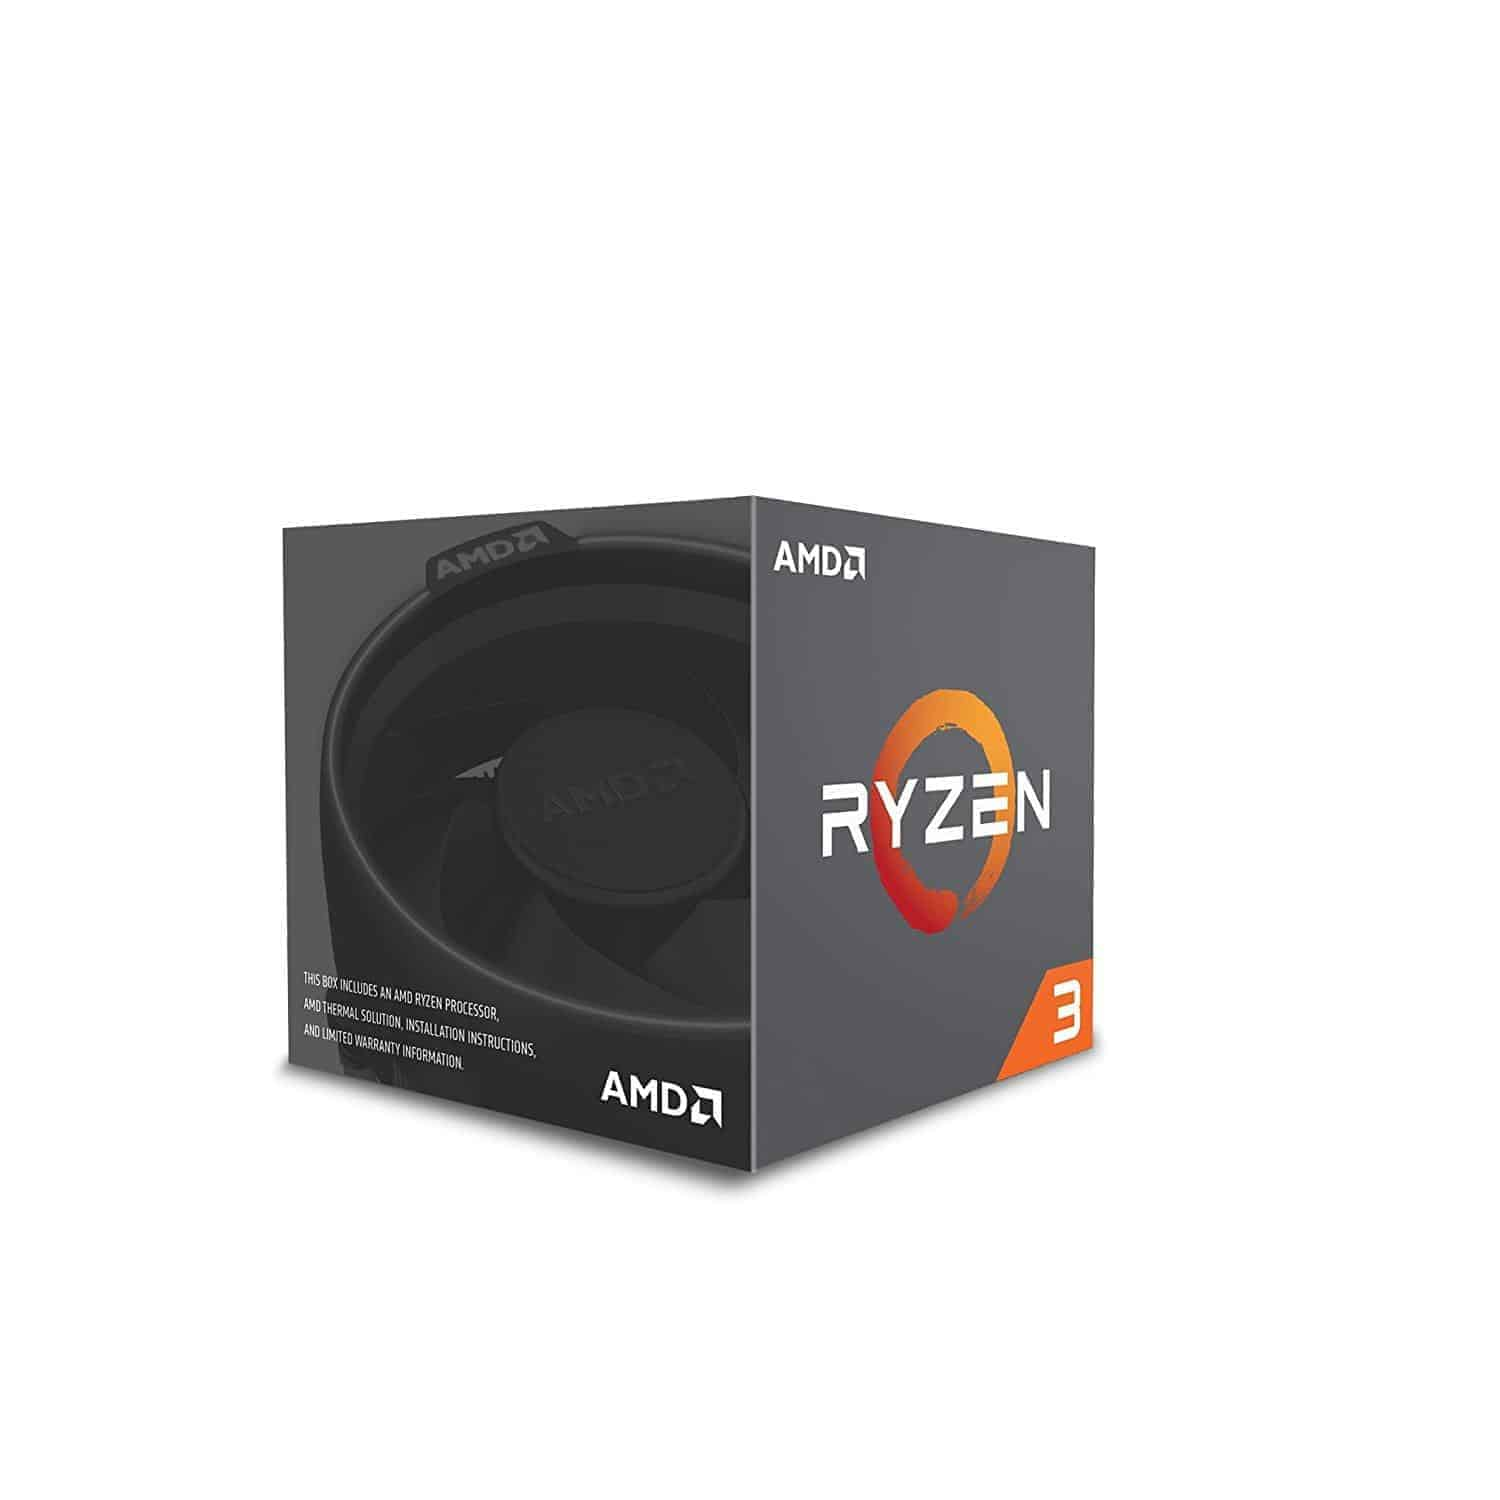 AMD Ryzen 3 1200 Desktop Processor with Wraith Stealth Cooler, Kartmy